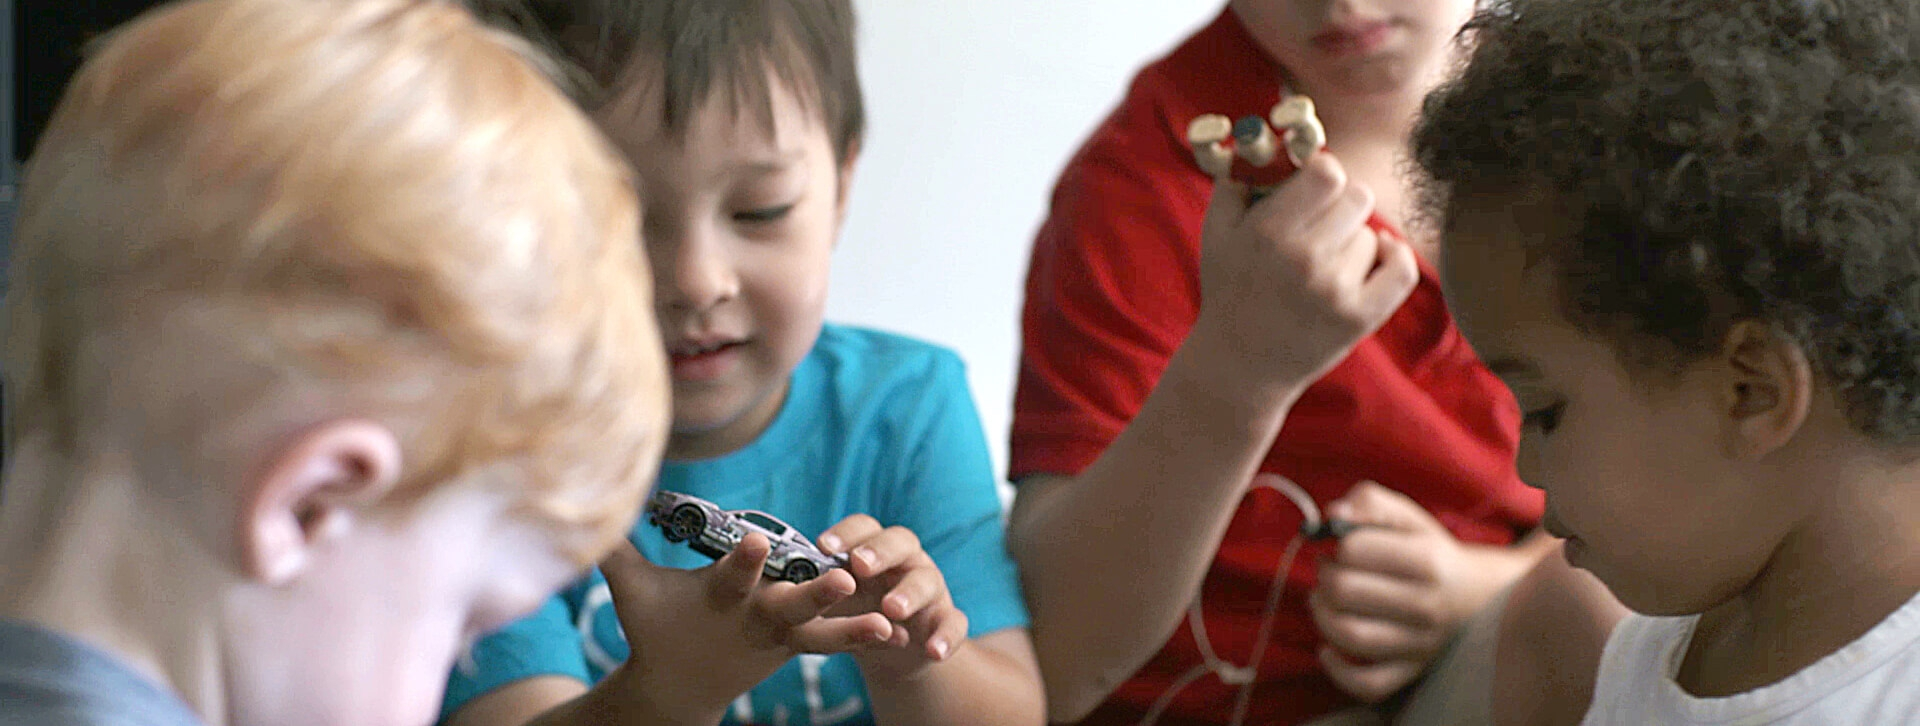 A child plays with a toy car as other children look on.